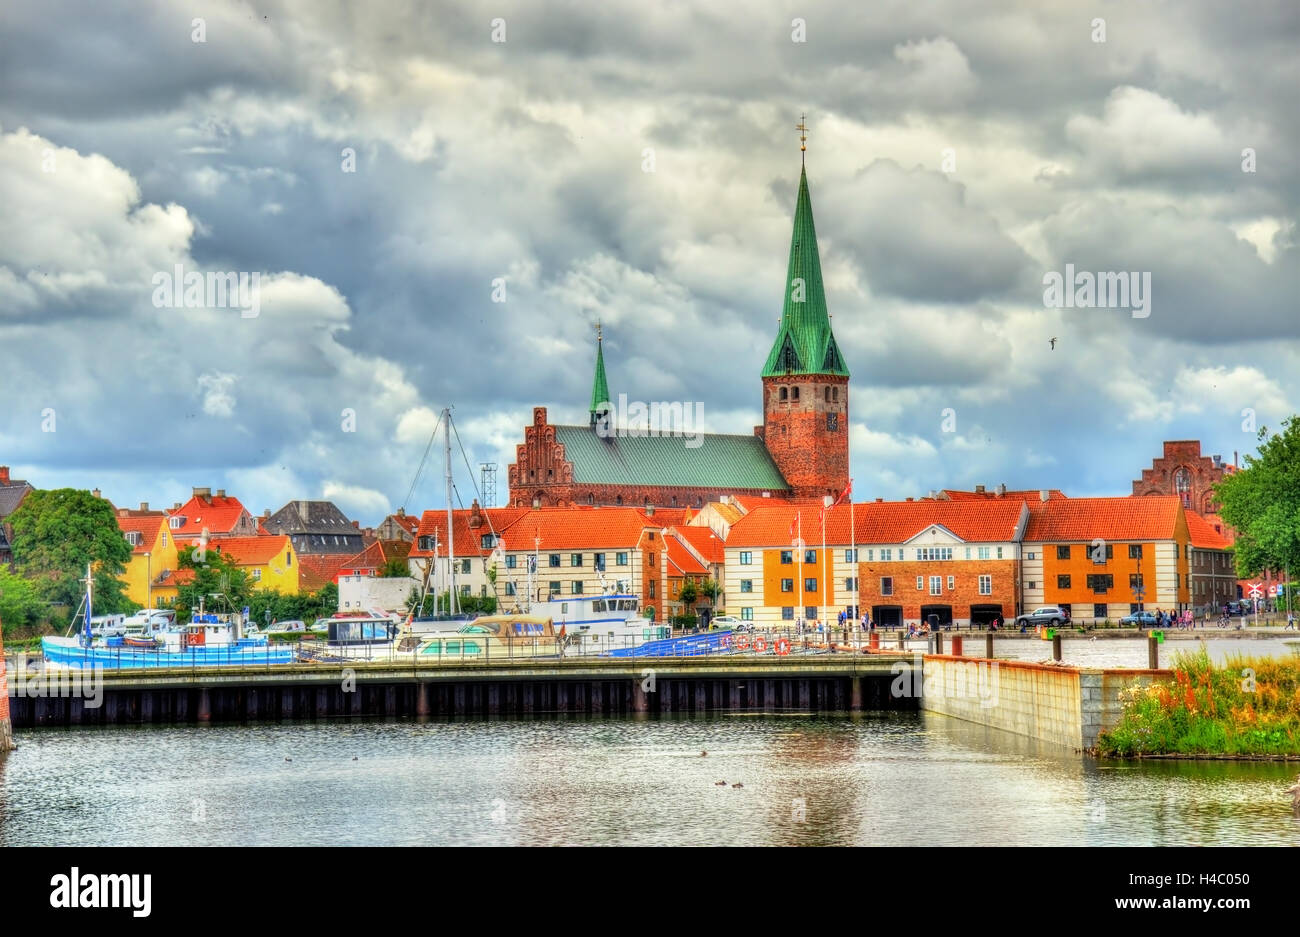 View of Saint Olaf Church in Helsingor - Denmark - Stock Image